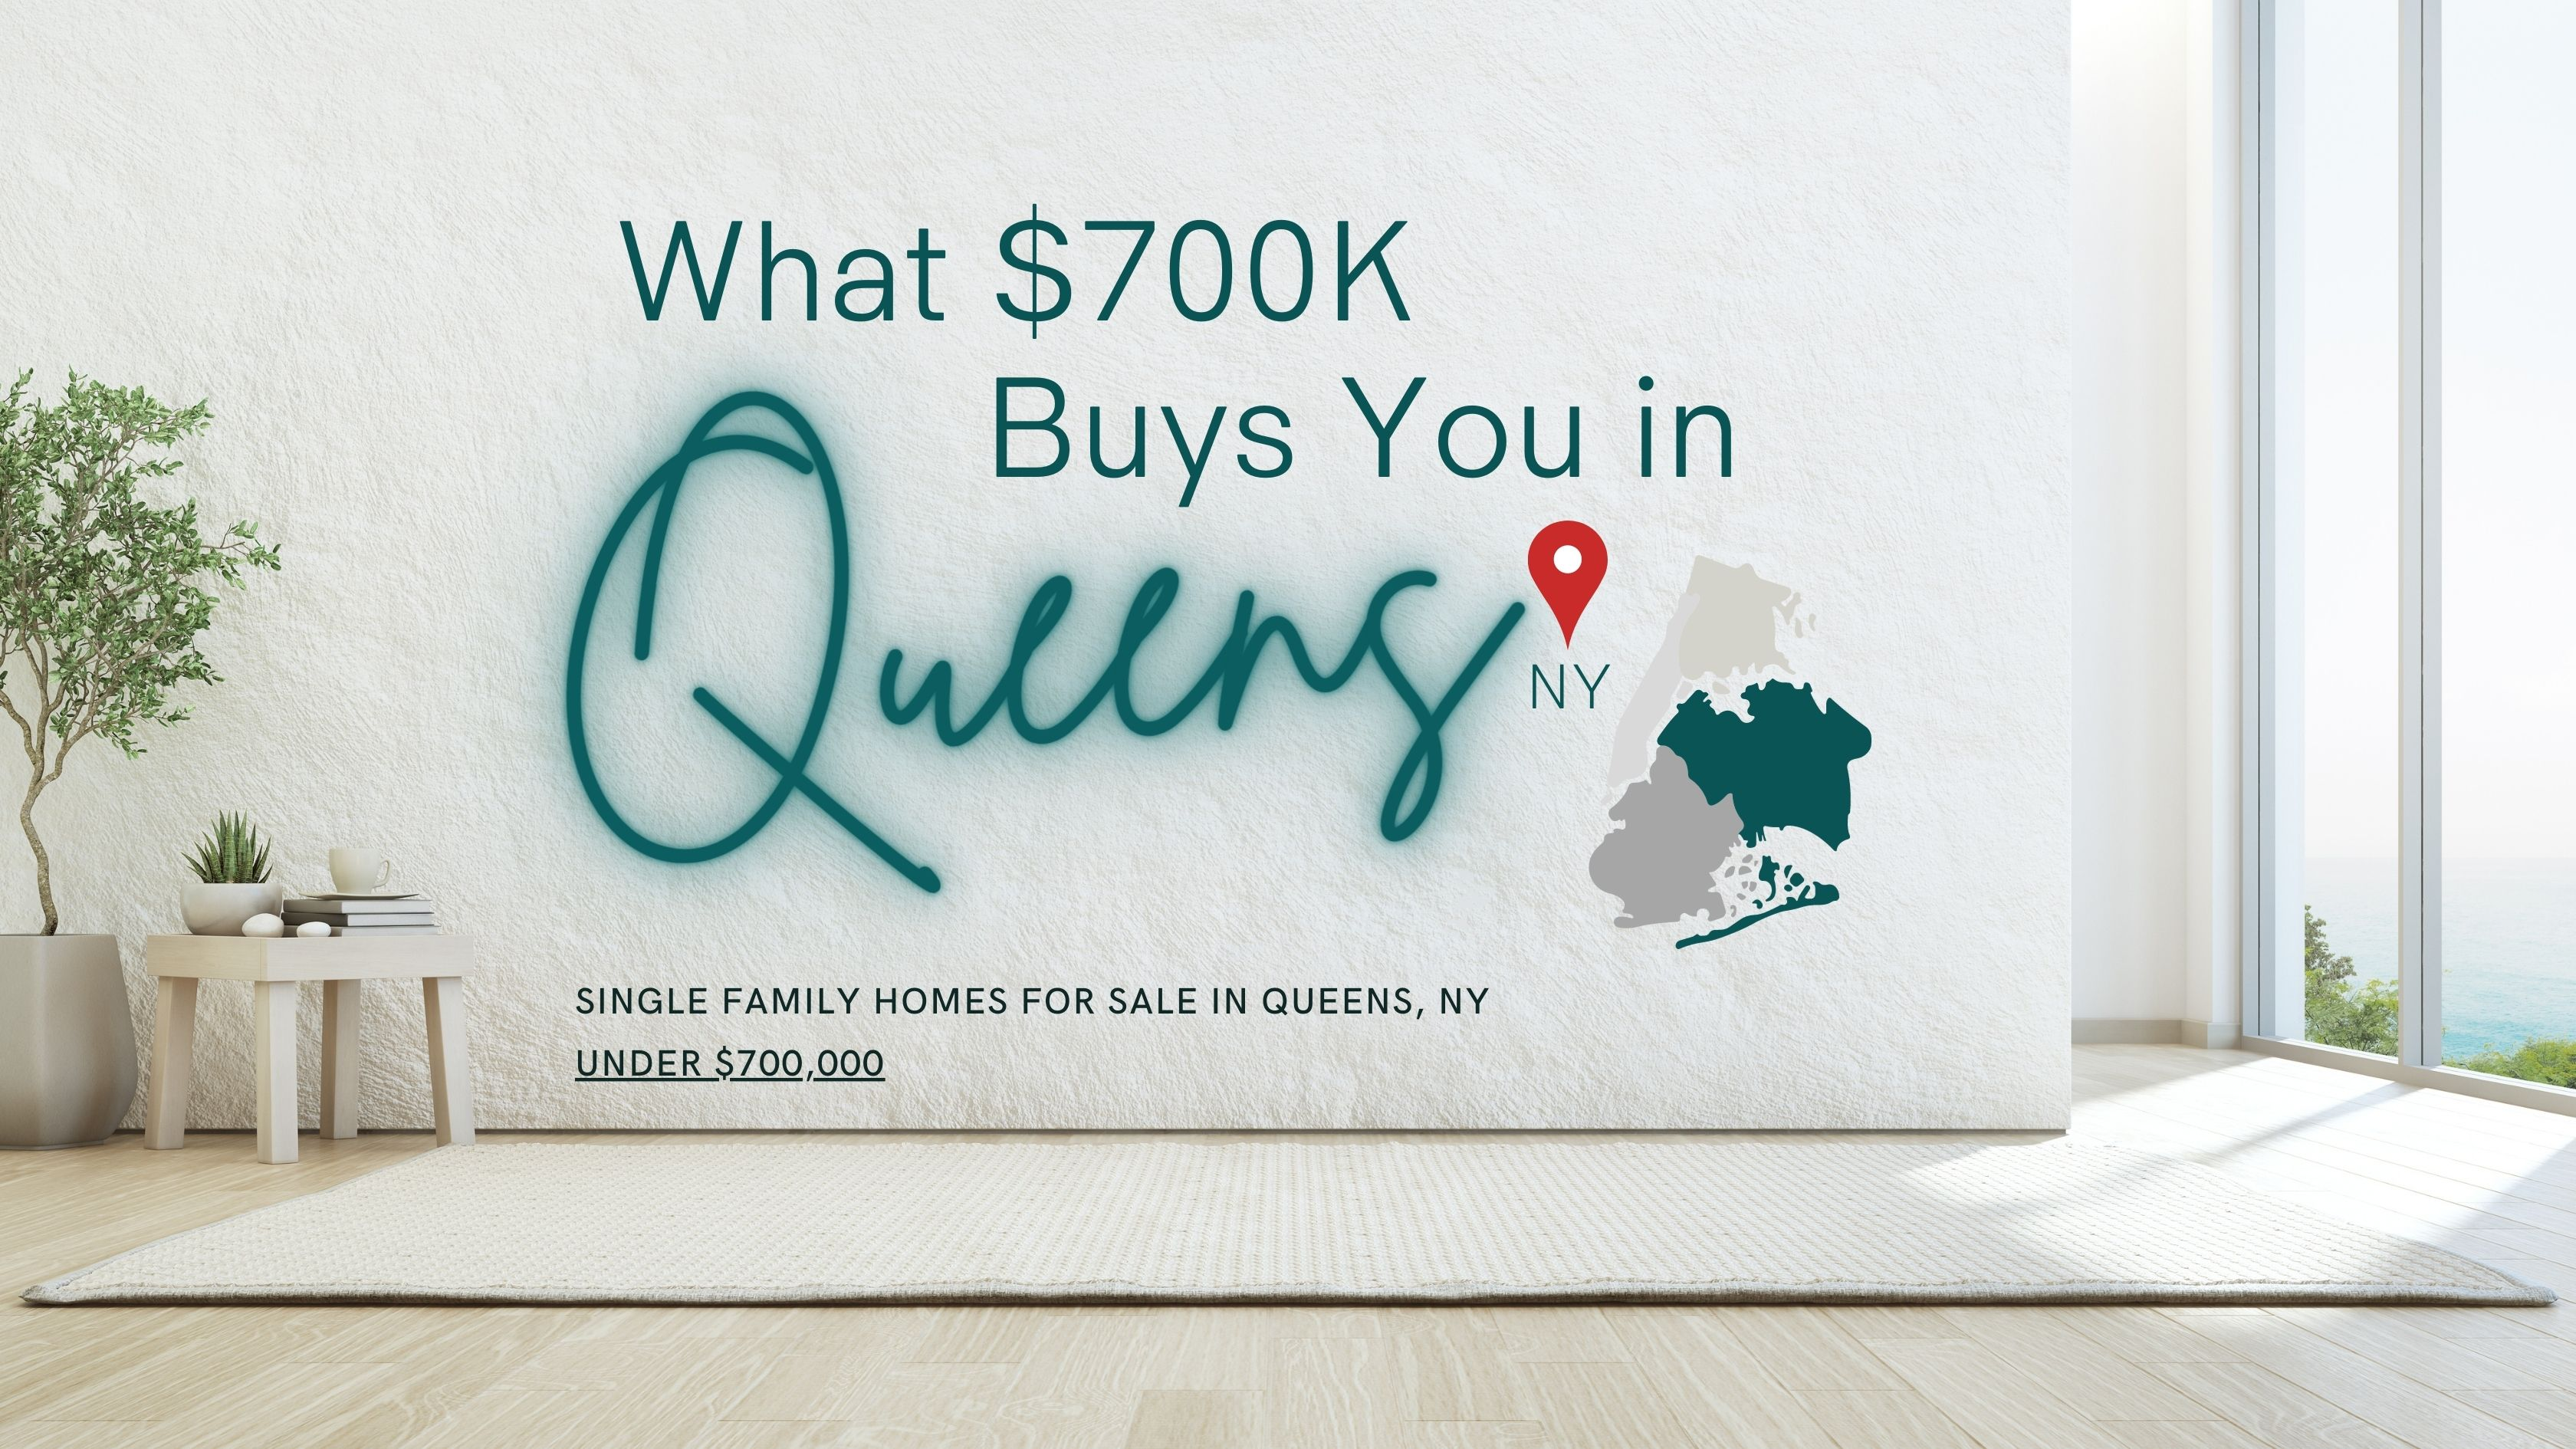 queens ny homes for sale under 700000